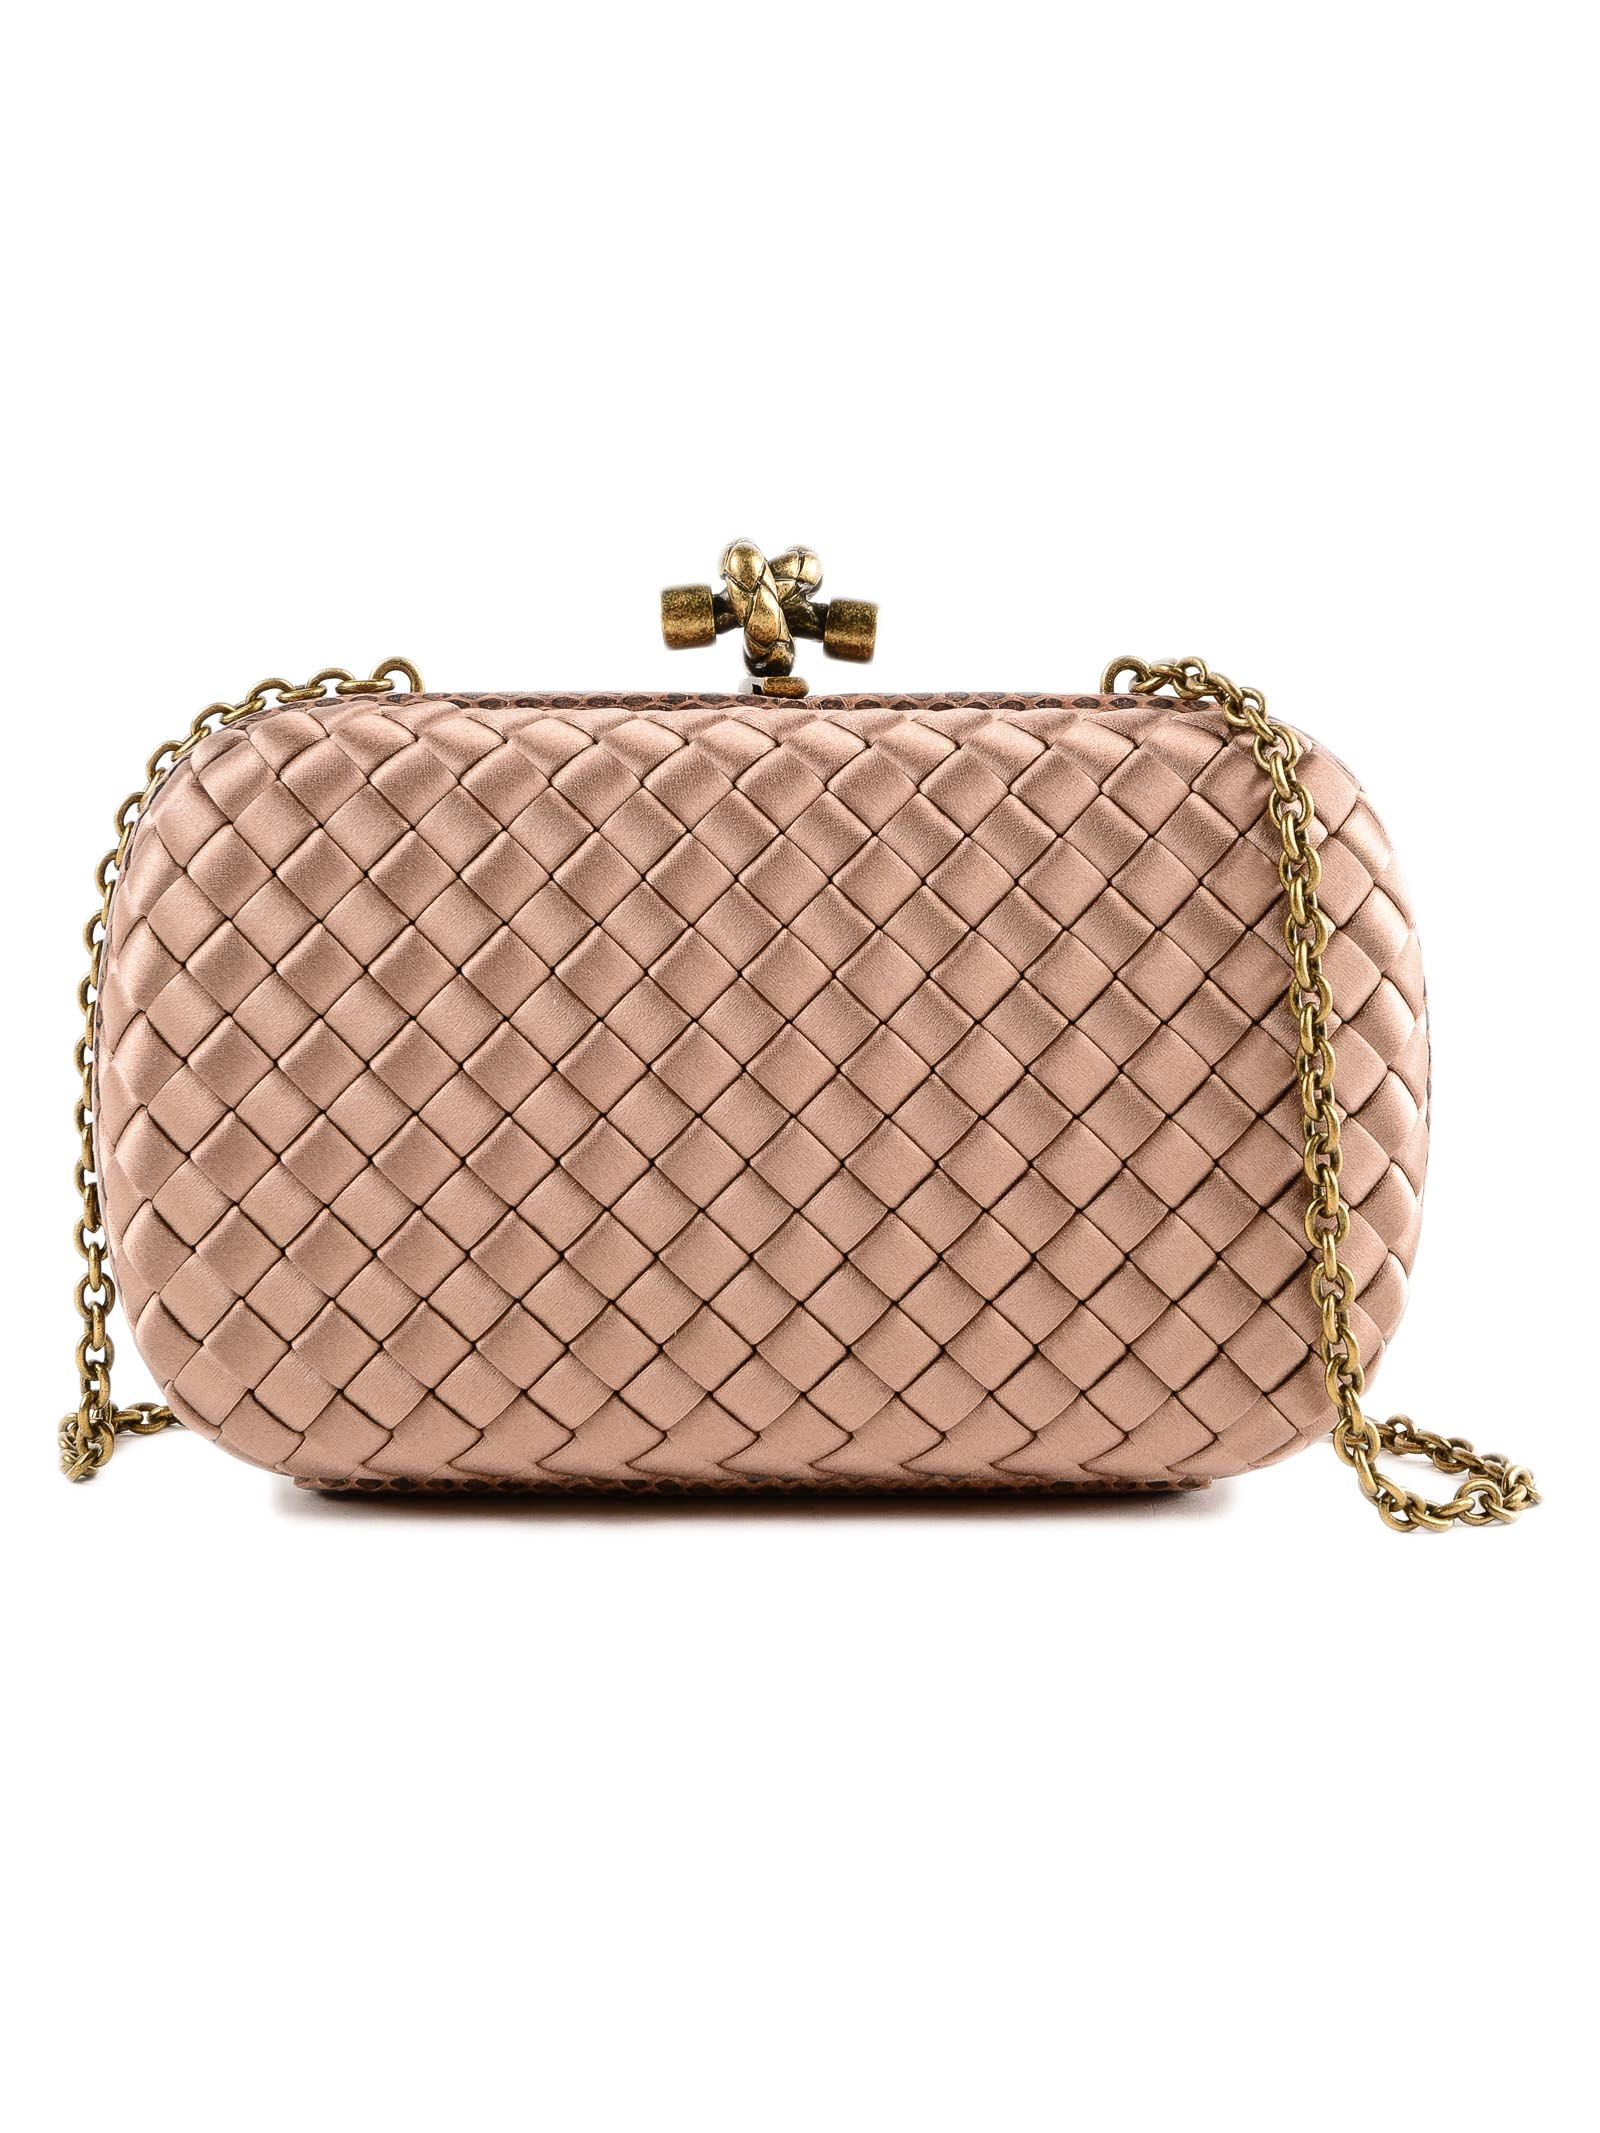 04528741275 BOTTEGA VENETA CHAIN KNOT EVENING BAG, DAHLIA   ModeSens